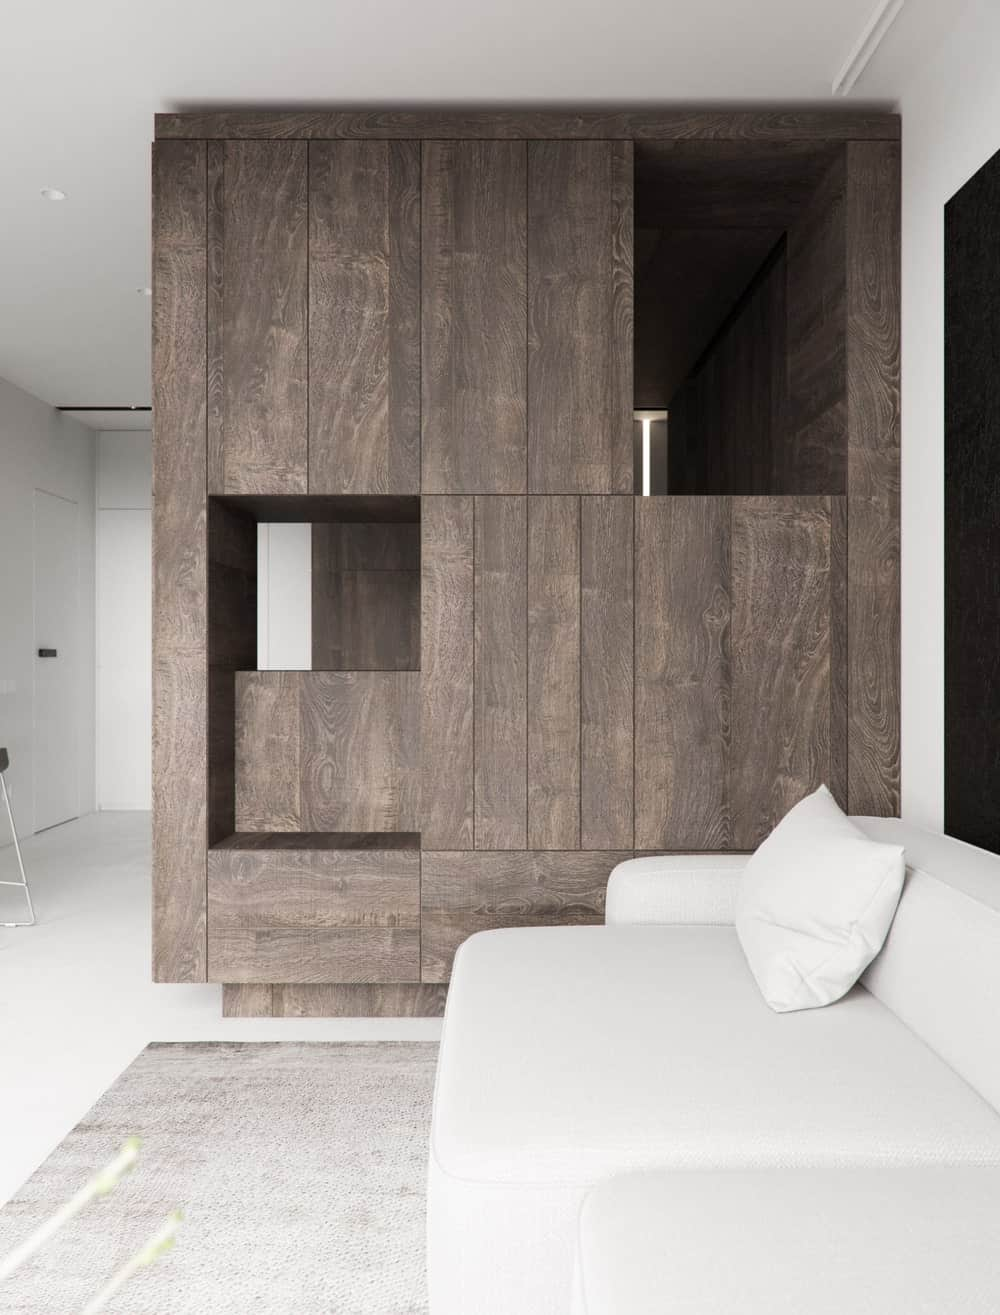 This view of the living room showscases more of the large wooden wall made by the structure of the bed. You can see here the cabinets of the wall.